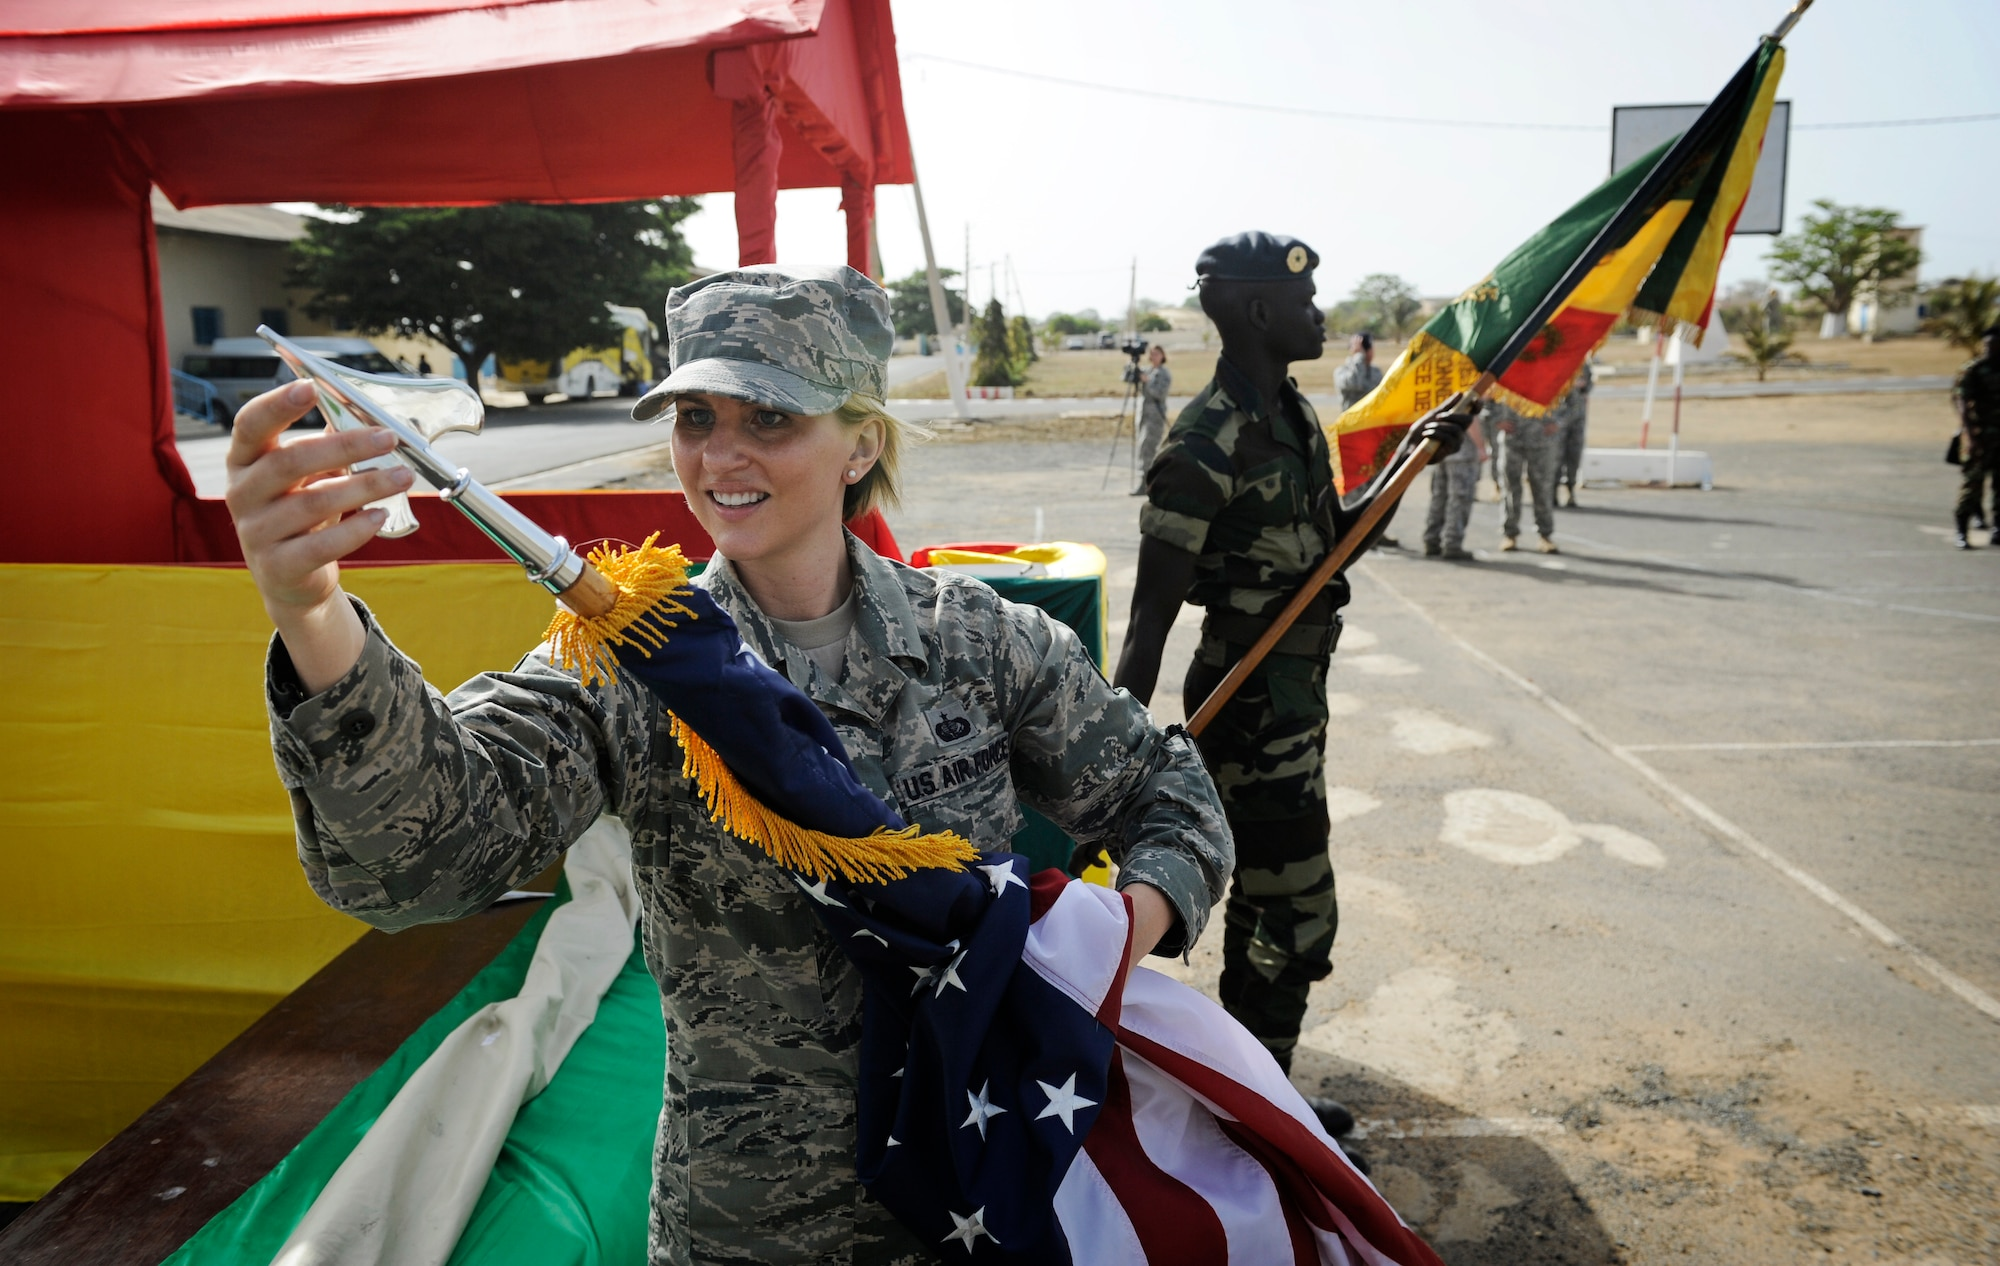 Staff Sgt. Jessica Ancheta, U.S. Air Forces in Europe and Air Forces Africa protocol specialist, prepares the U.S. flag for the opening ceremony of African Partnership Flight in Dakar, Senegal, June 16, 2014. USAFE-AFAFRICA Airmen are in Senegal for APF, a program designed to improve communication and interoperabilty between regional partners in Africa. The African partners include Senegal, Togo, Burkina Faso, Benin, Ghana, Mauritania, Nigeria and Niger with the U.S. helping with organization. (U.S. Air Force photo/ Staff Sgt. Ryan Crane)